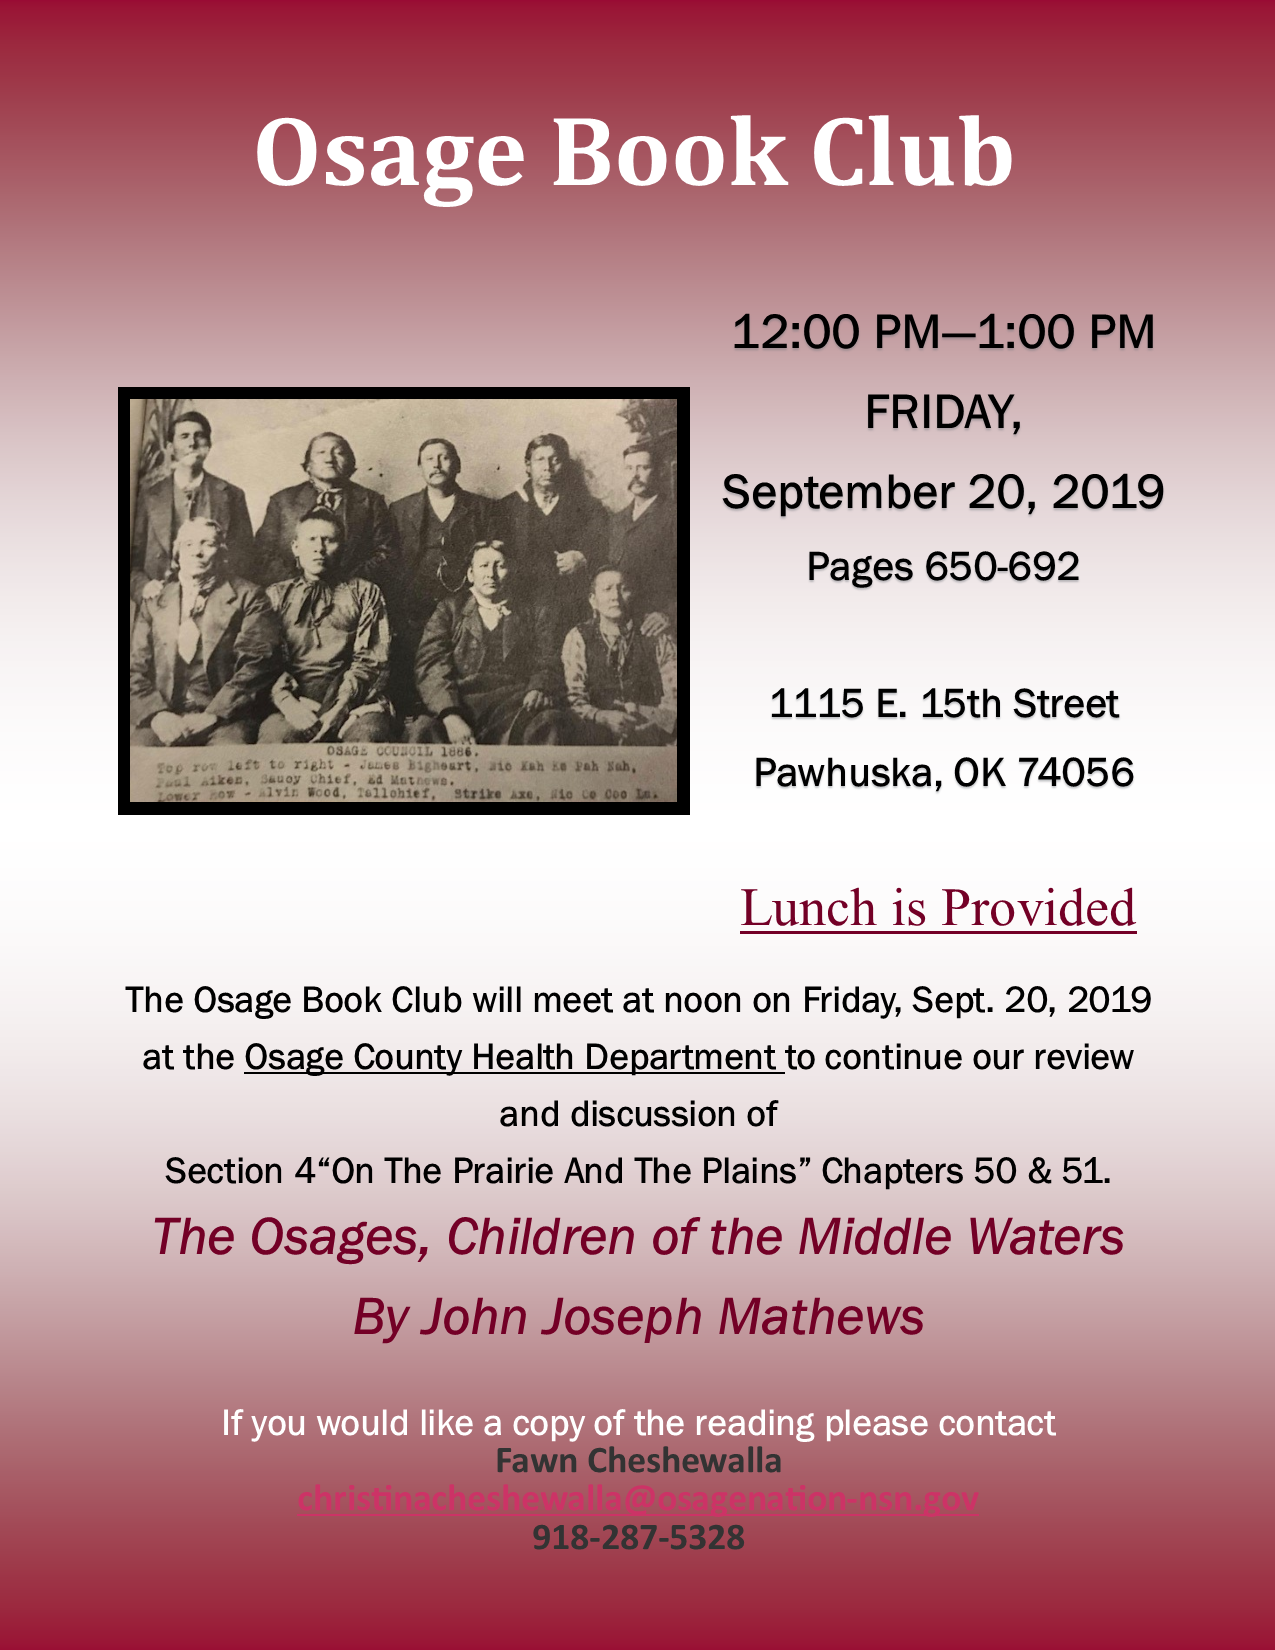 The Osage Book Club flyer